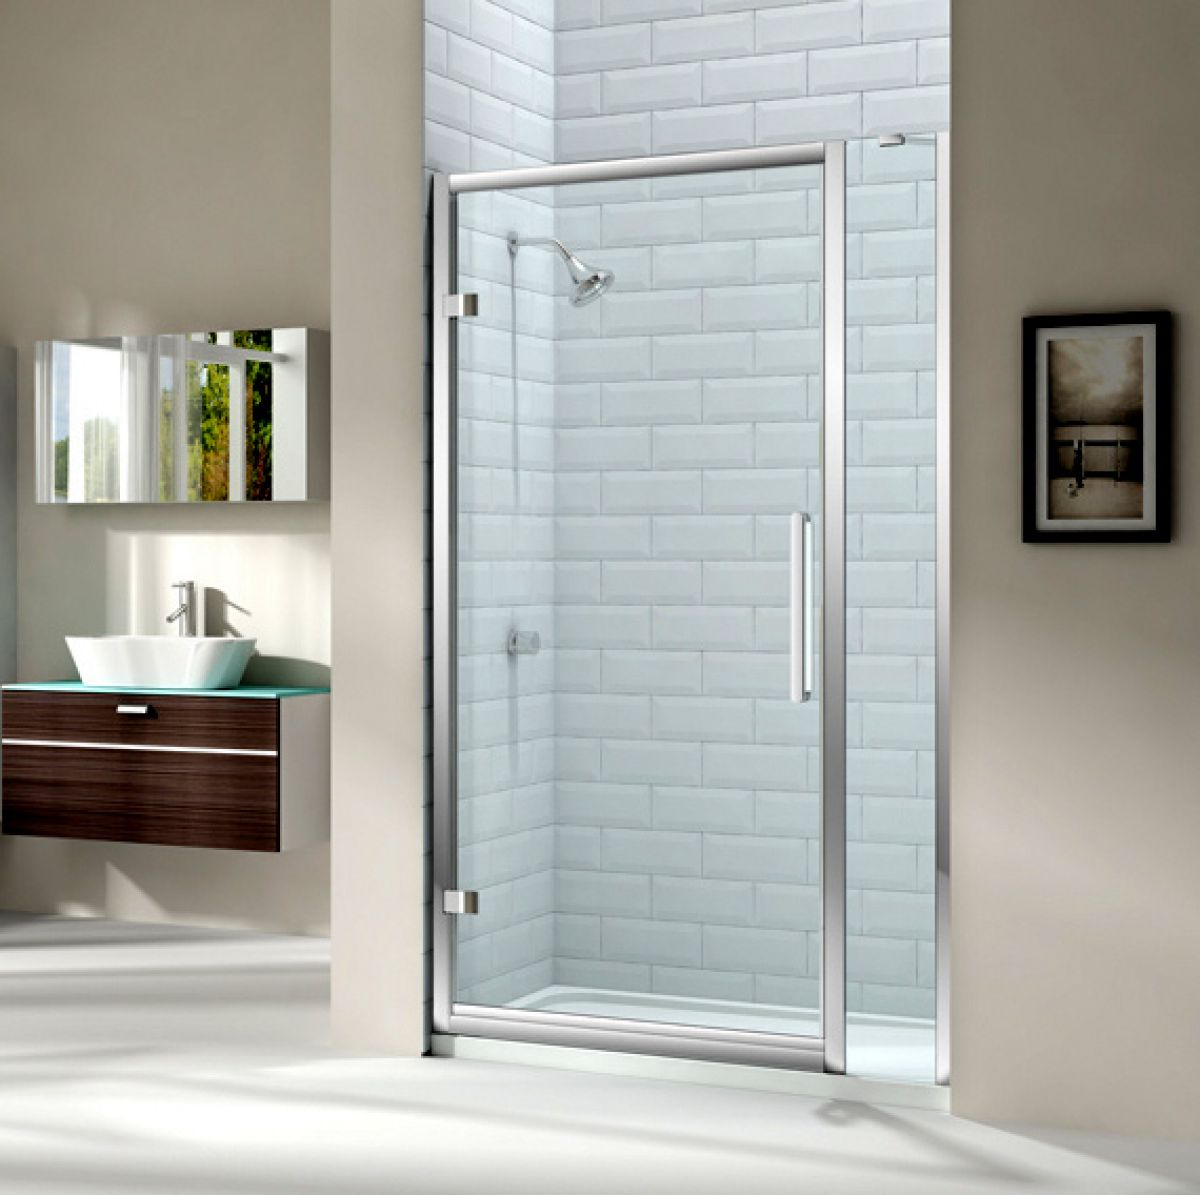 Merlyn series 8 hinged shower door and single inline panel for 1200 hinged shower door